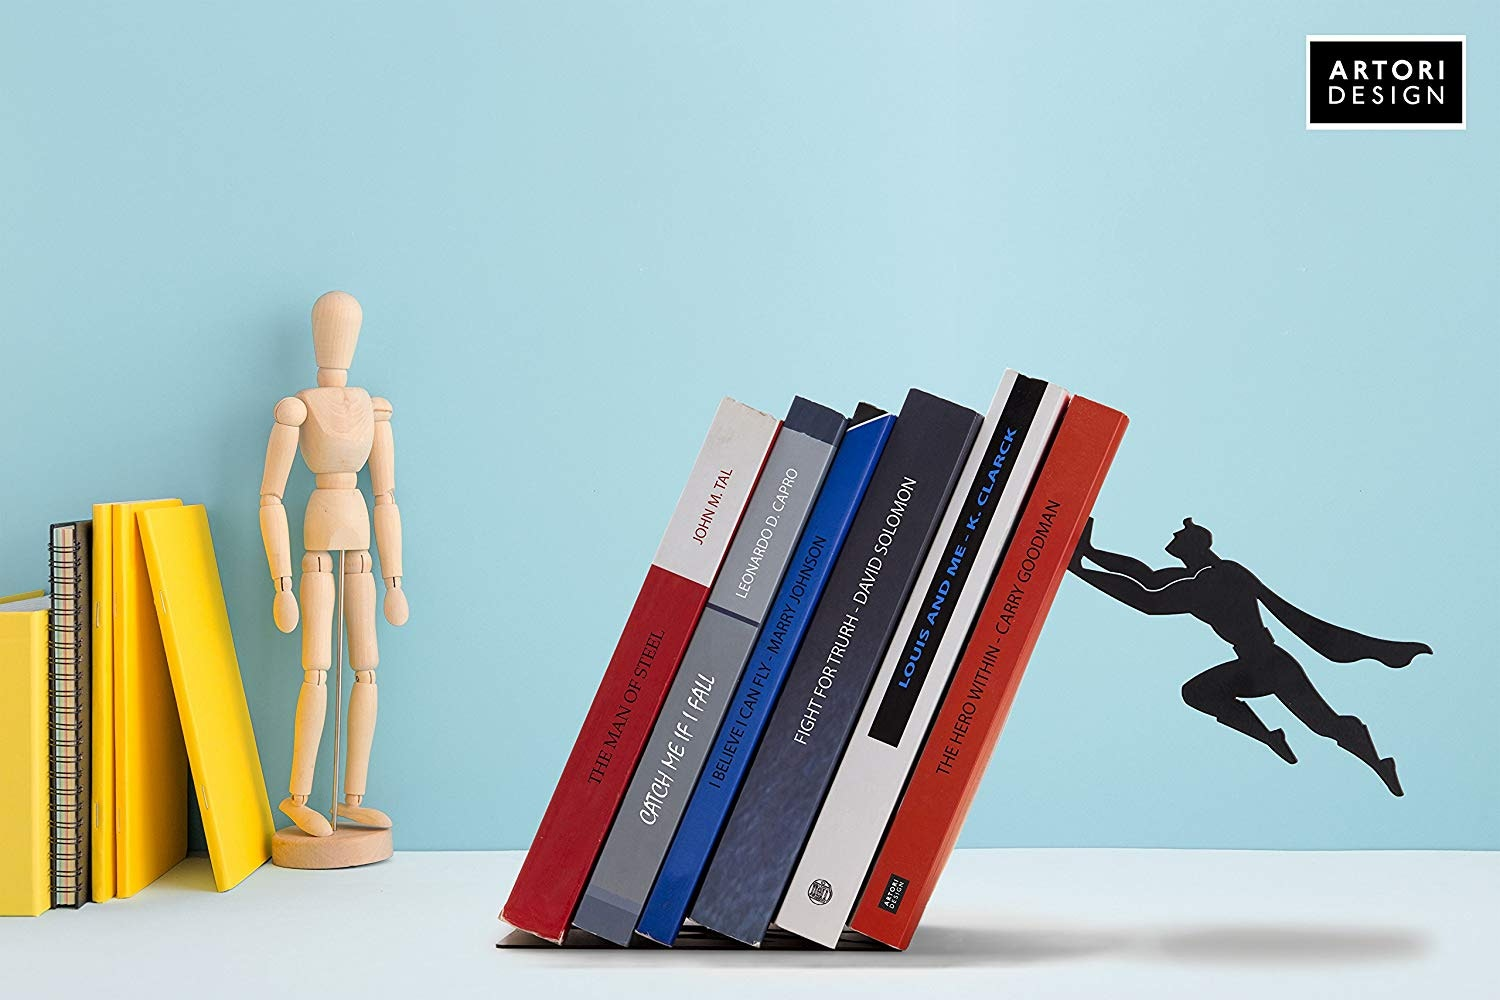 Atori design superhero bookends